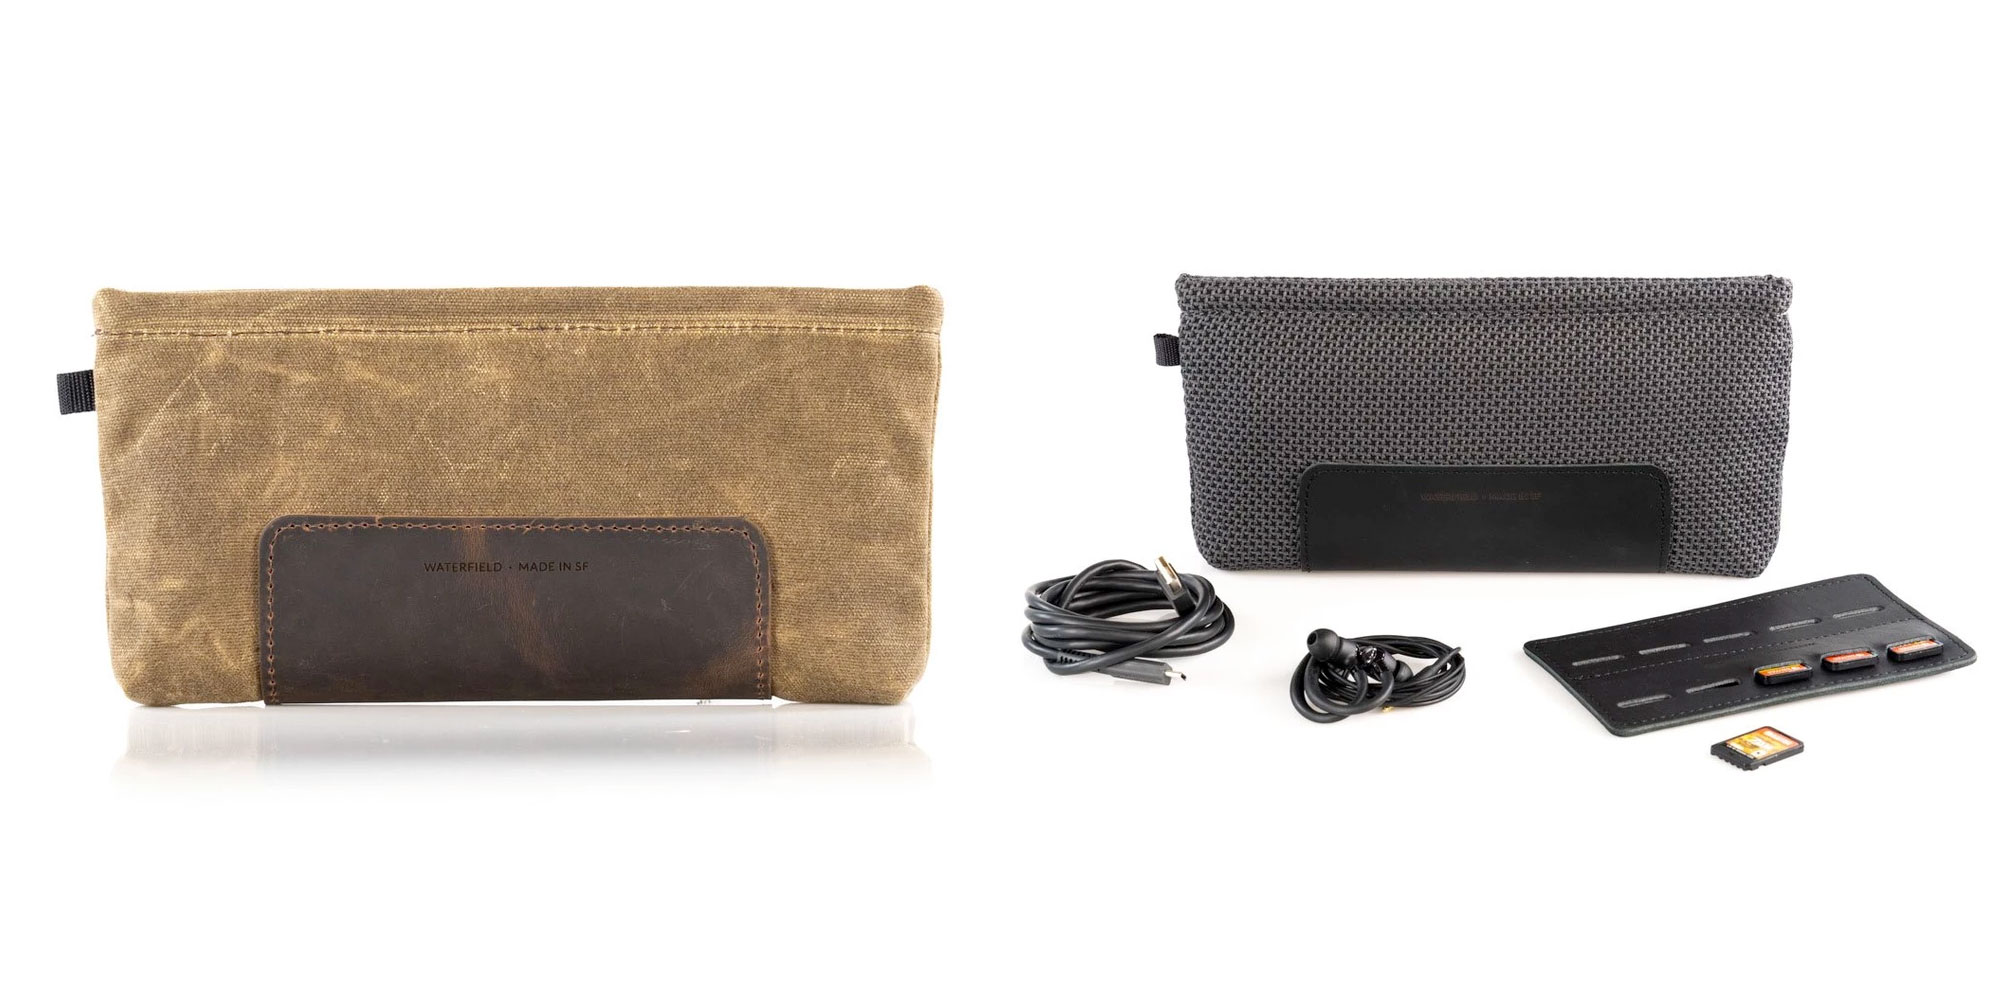 waterfield designs slip case nintendo switch lite